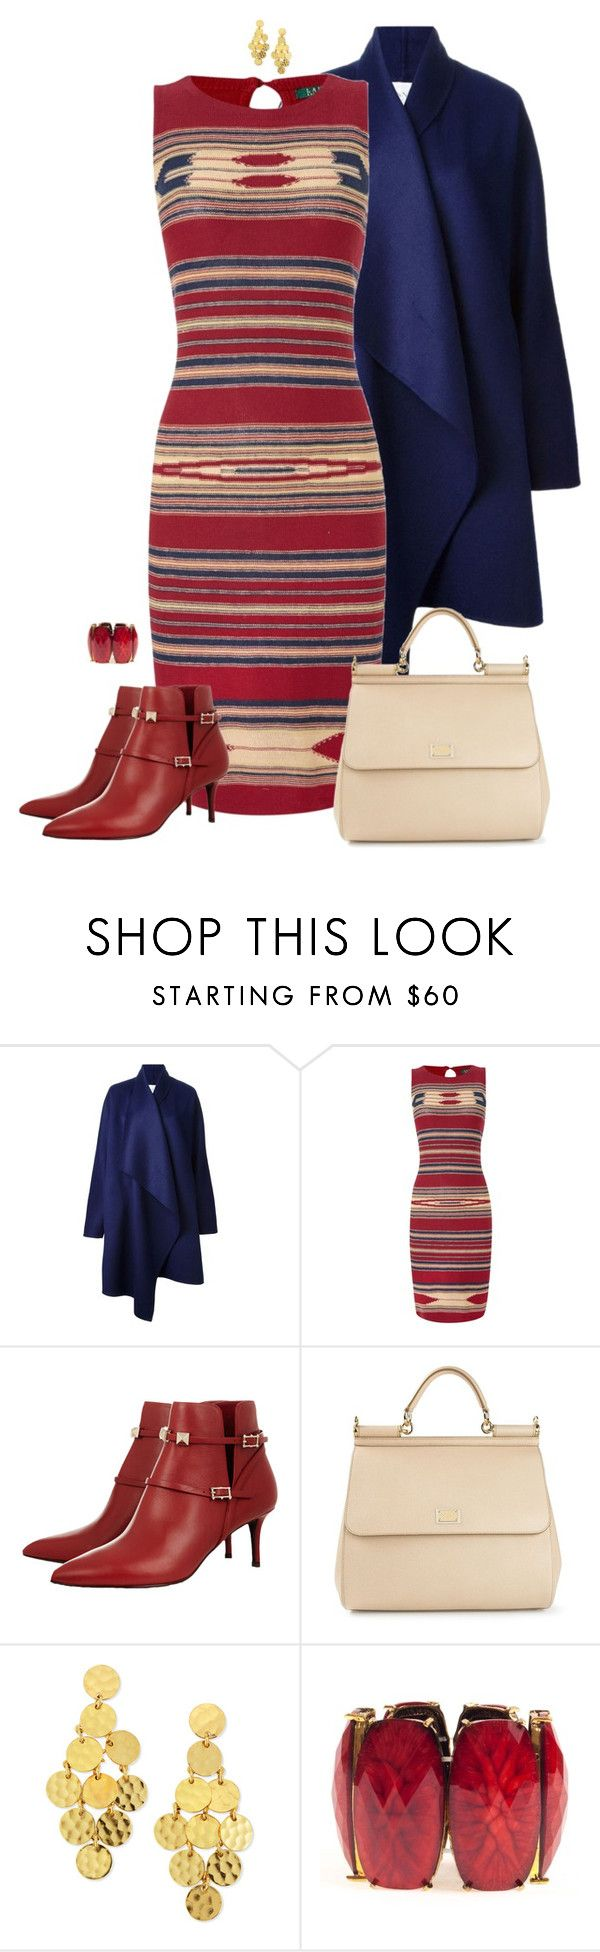 """Winter Evening Out!"" by rleveryday ❤ liked on Polyvore featuring Vionnet, Lauren Ralph Lauren, Dolce&Gabbana, Stephanie Kantis, Amrita Singh, EveningOutfit and RLEveryday"